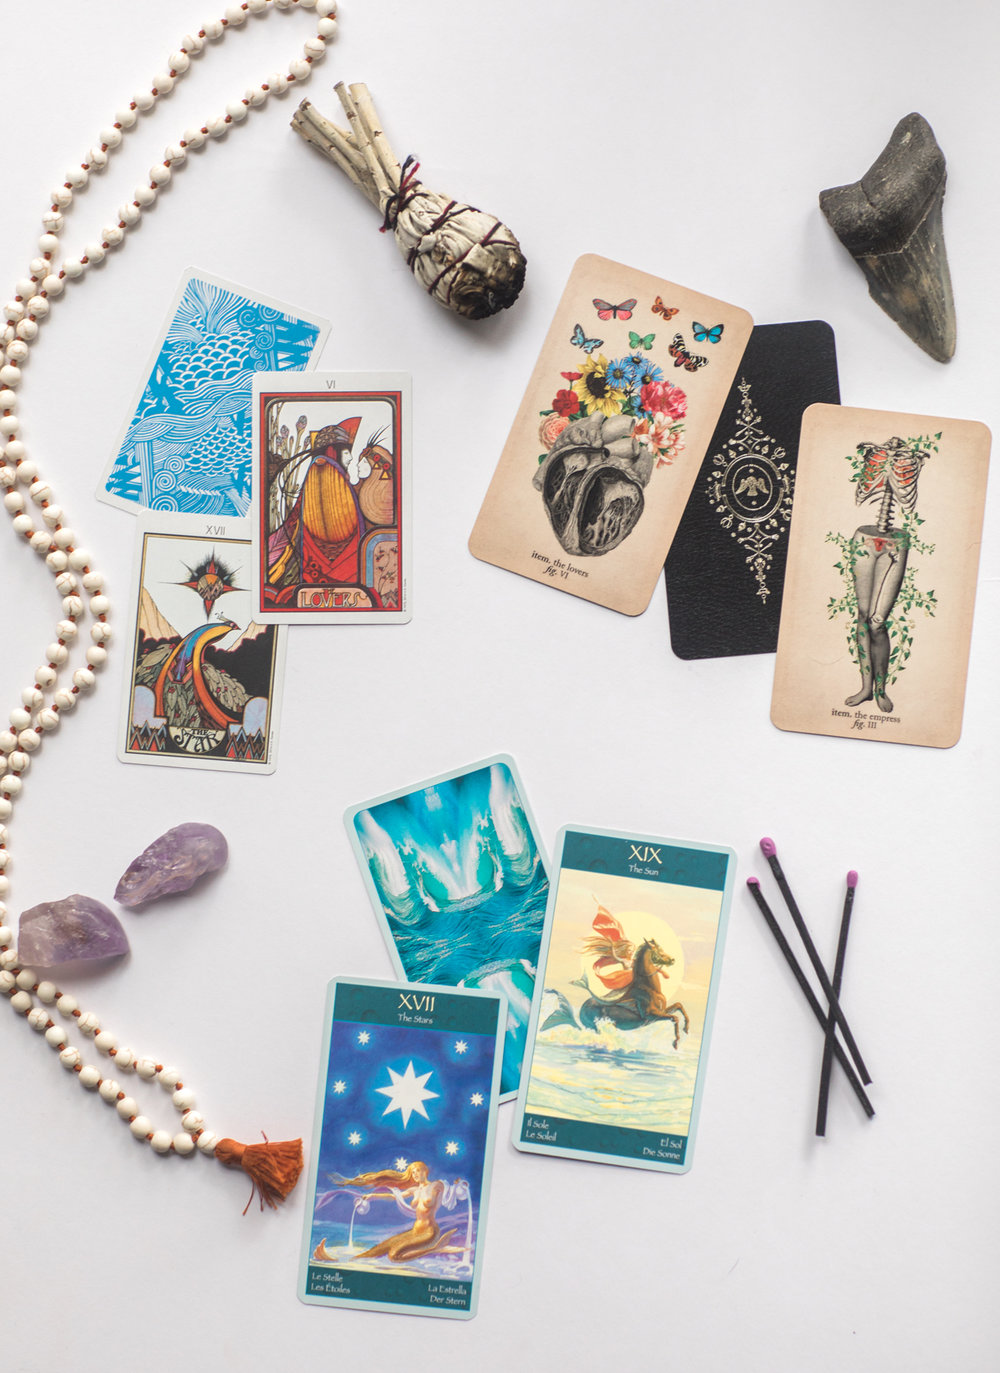 Clockwise from top left:  Aquarian Tarot Deck ,  Antique Anatomy Tarot by Black and the Moon ,  Mermaid Tarot Deck